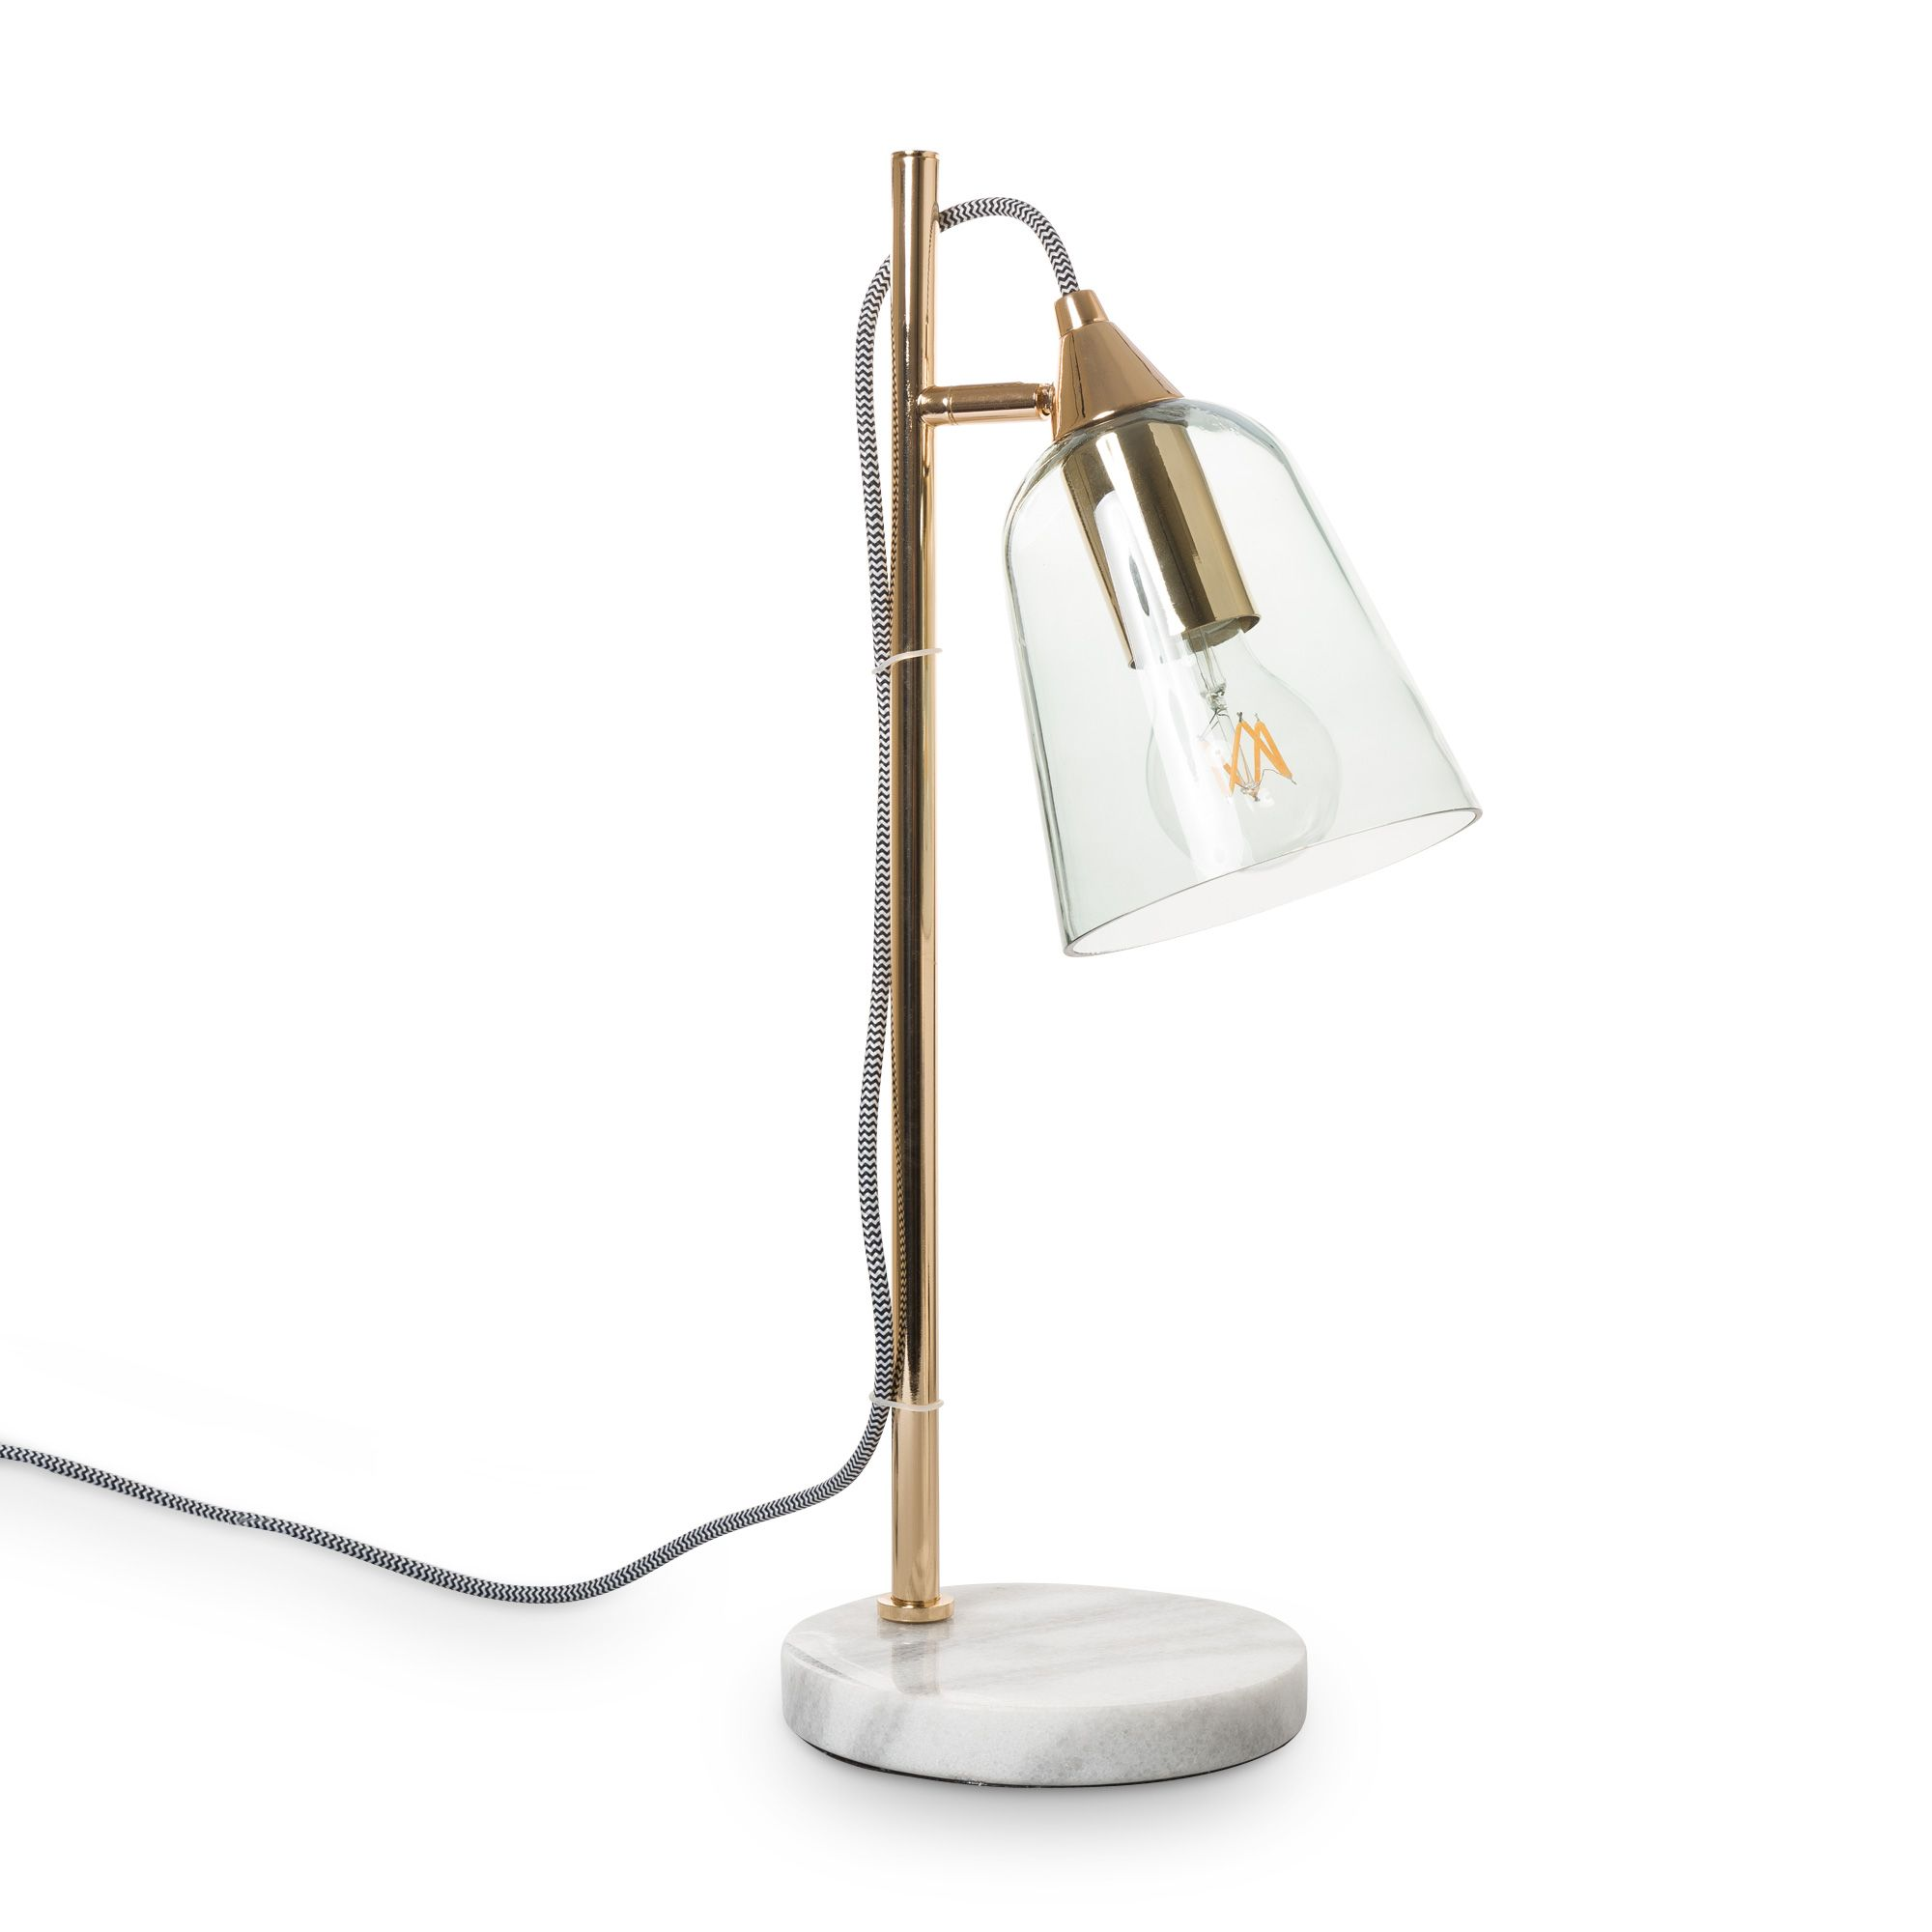 Buy the glass shade marble table lamp at oliver bonas enjoy free buy the glass shade marble table lamp at oliver bonas enjoy free uk standard delivery geotapseo Gallery